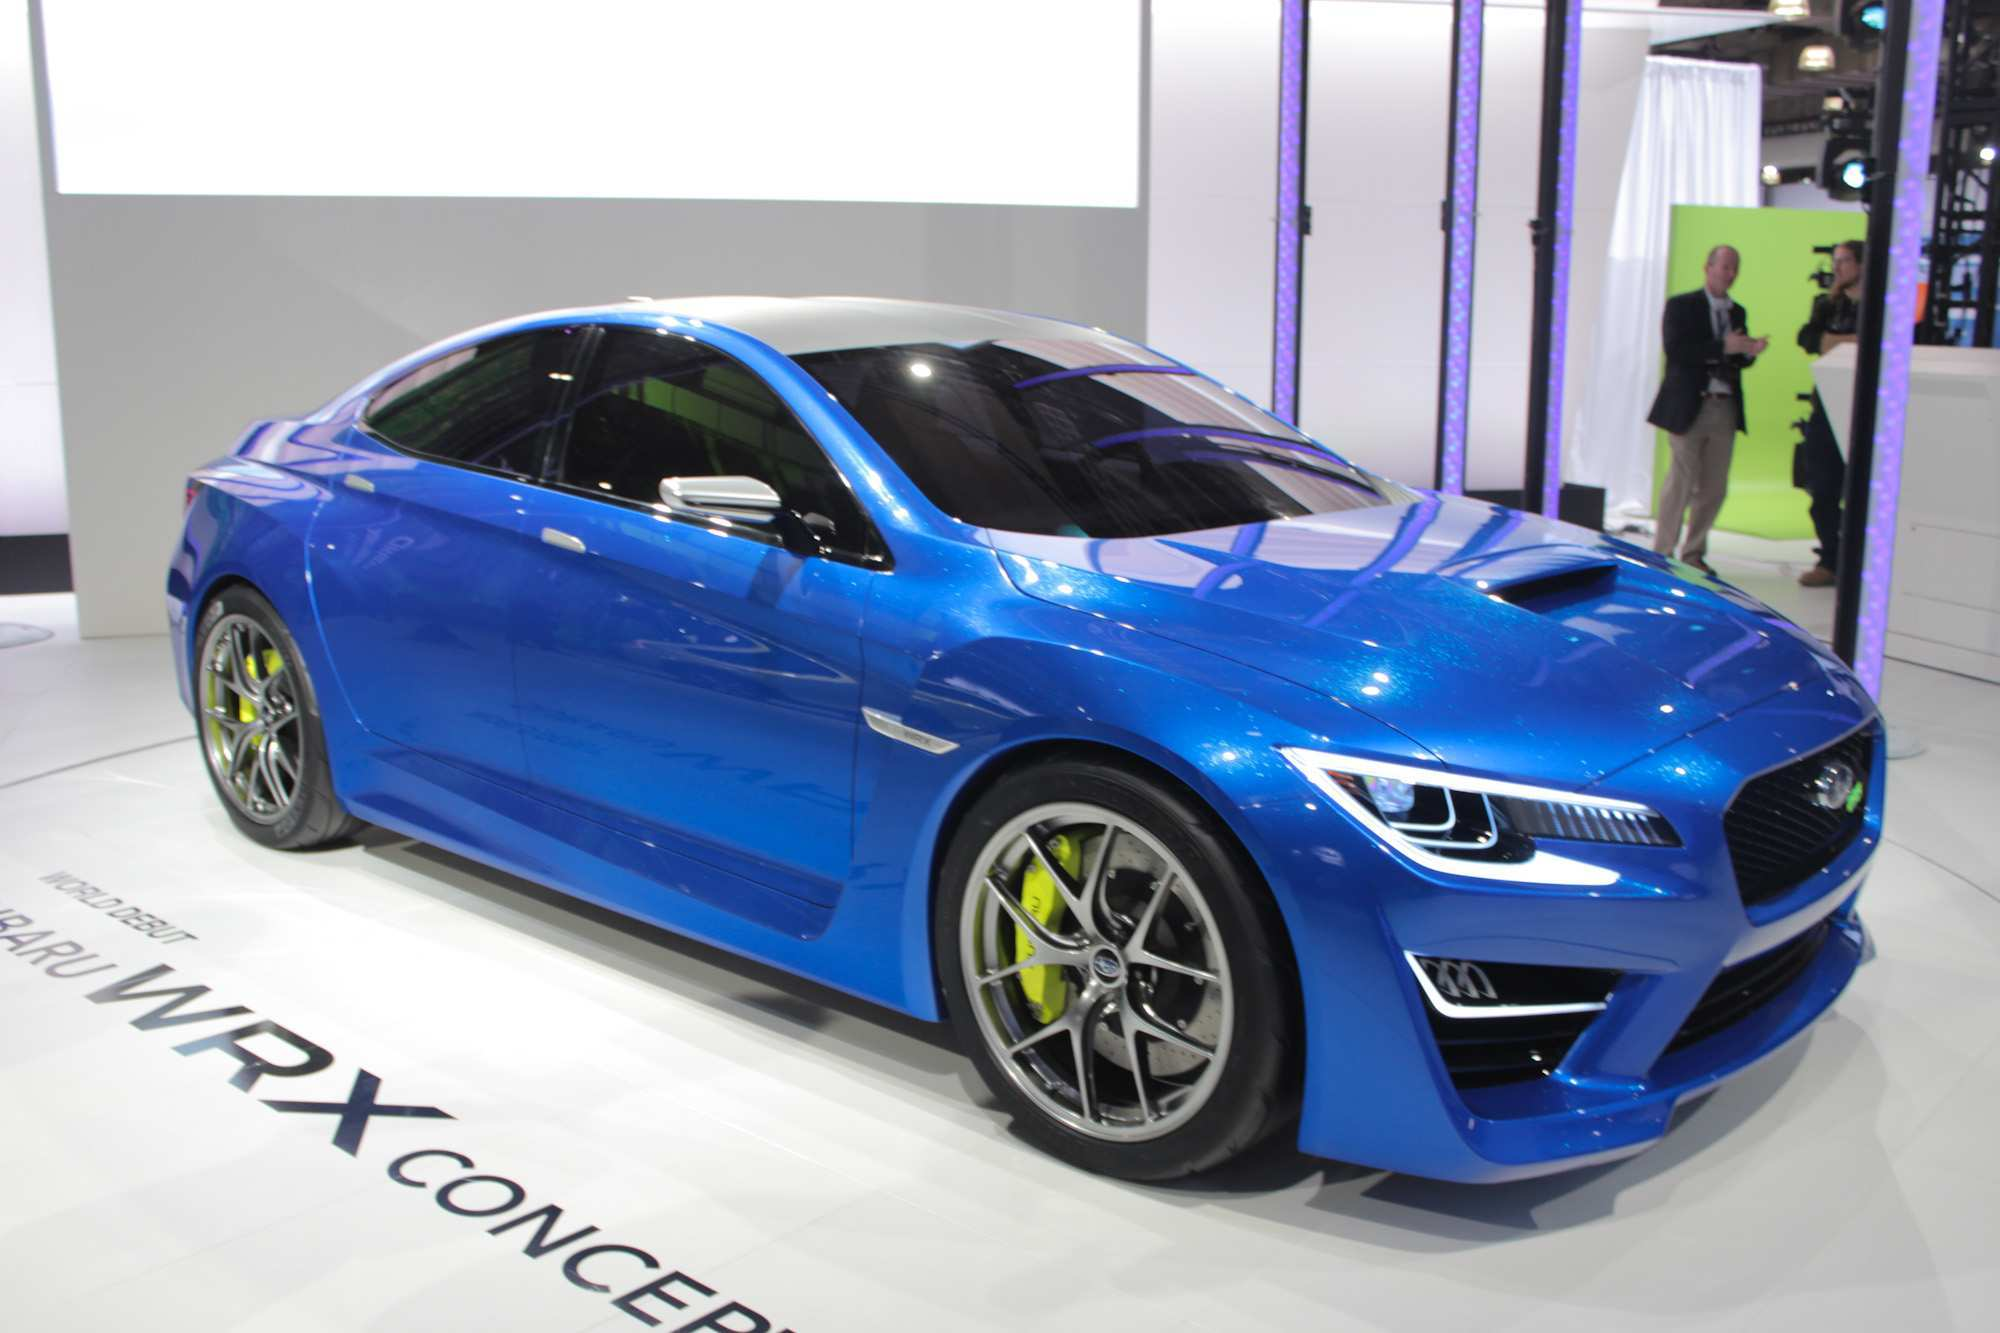 97 All New Subaru Wrx 2019 Concept Redesign